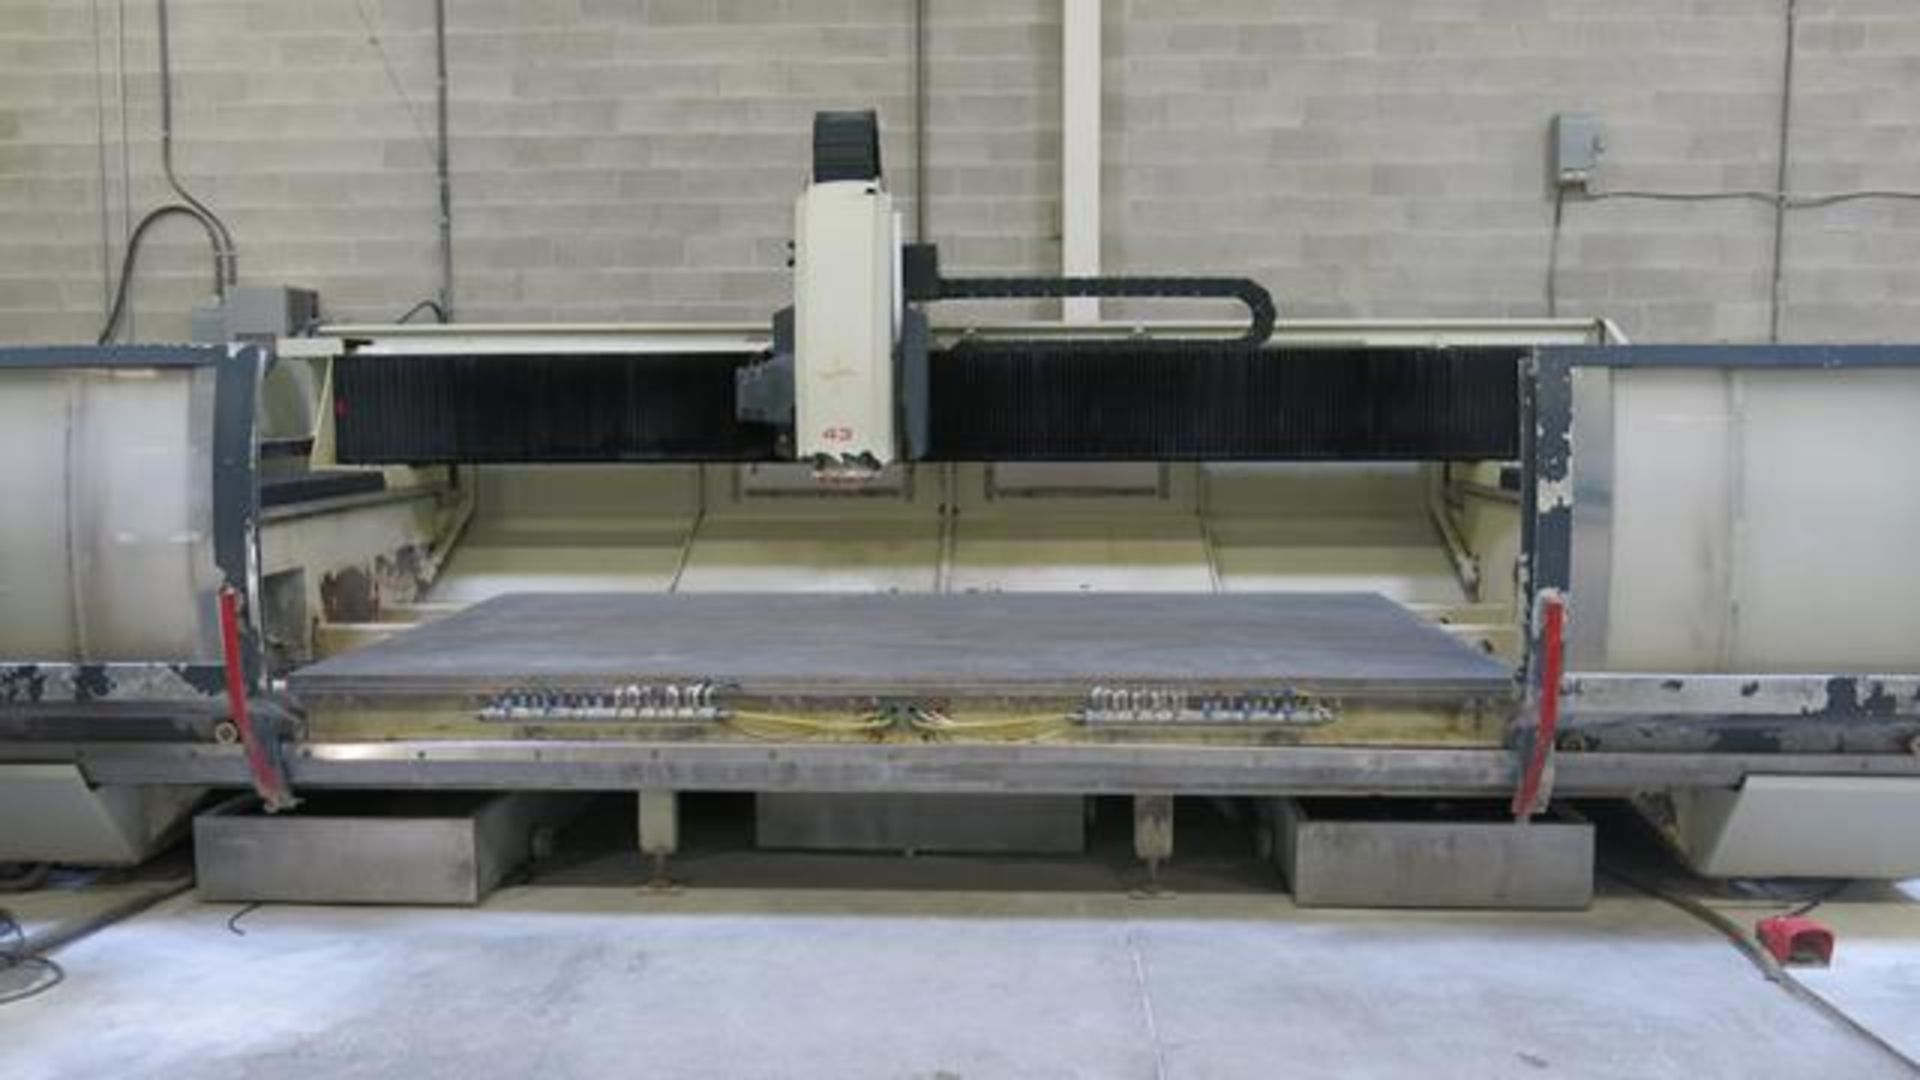 Lot 904 - INTERMAC, MASTER 43 STANDARD, CNC STONE AND GLASS MACHINING CENTRE, 25,995 HOURS, S/N 75774, 2006